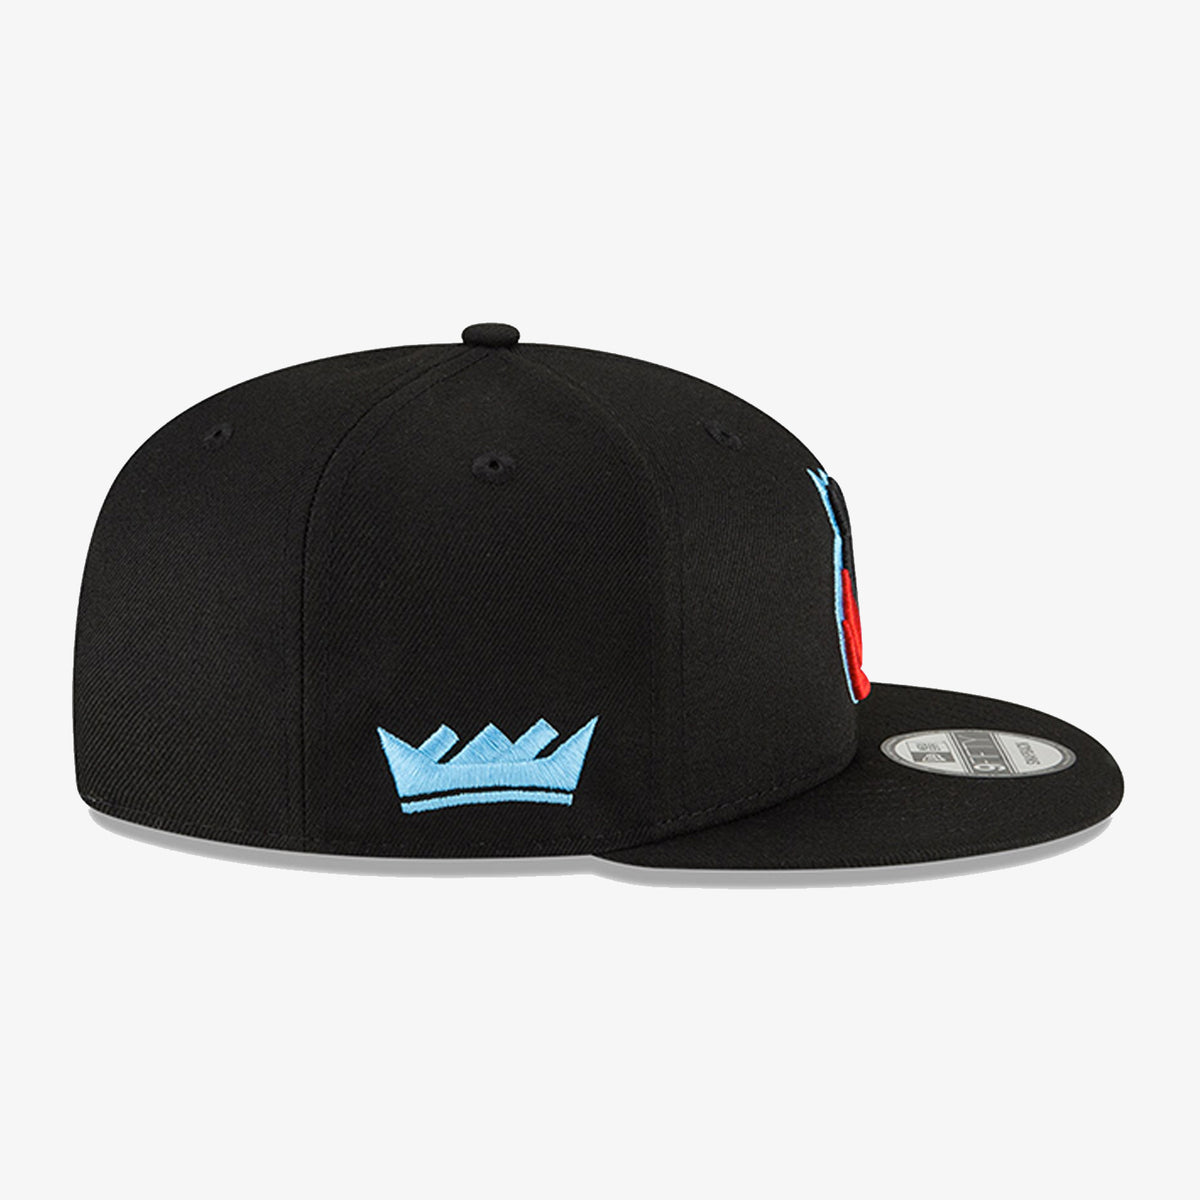 Sacramento Kings City Edition 950 Snapback - Black